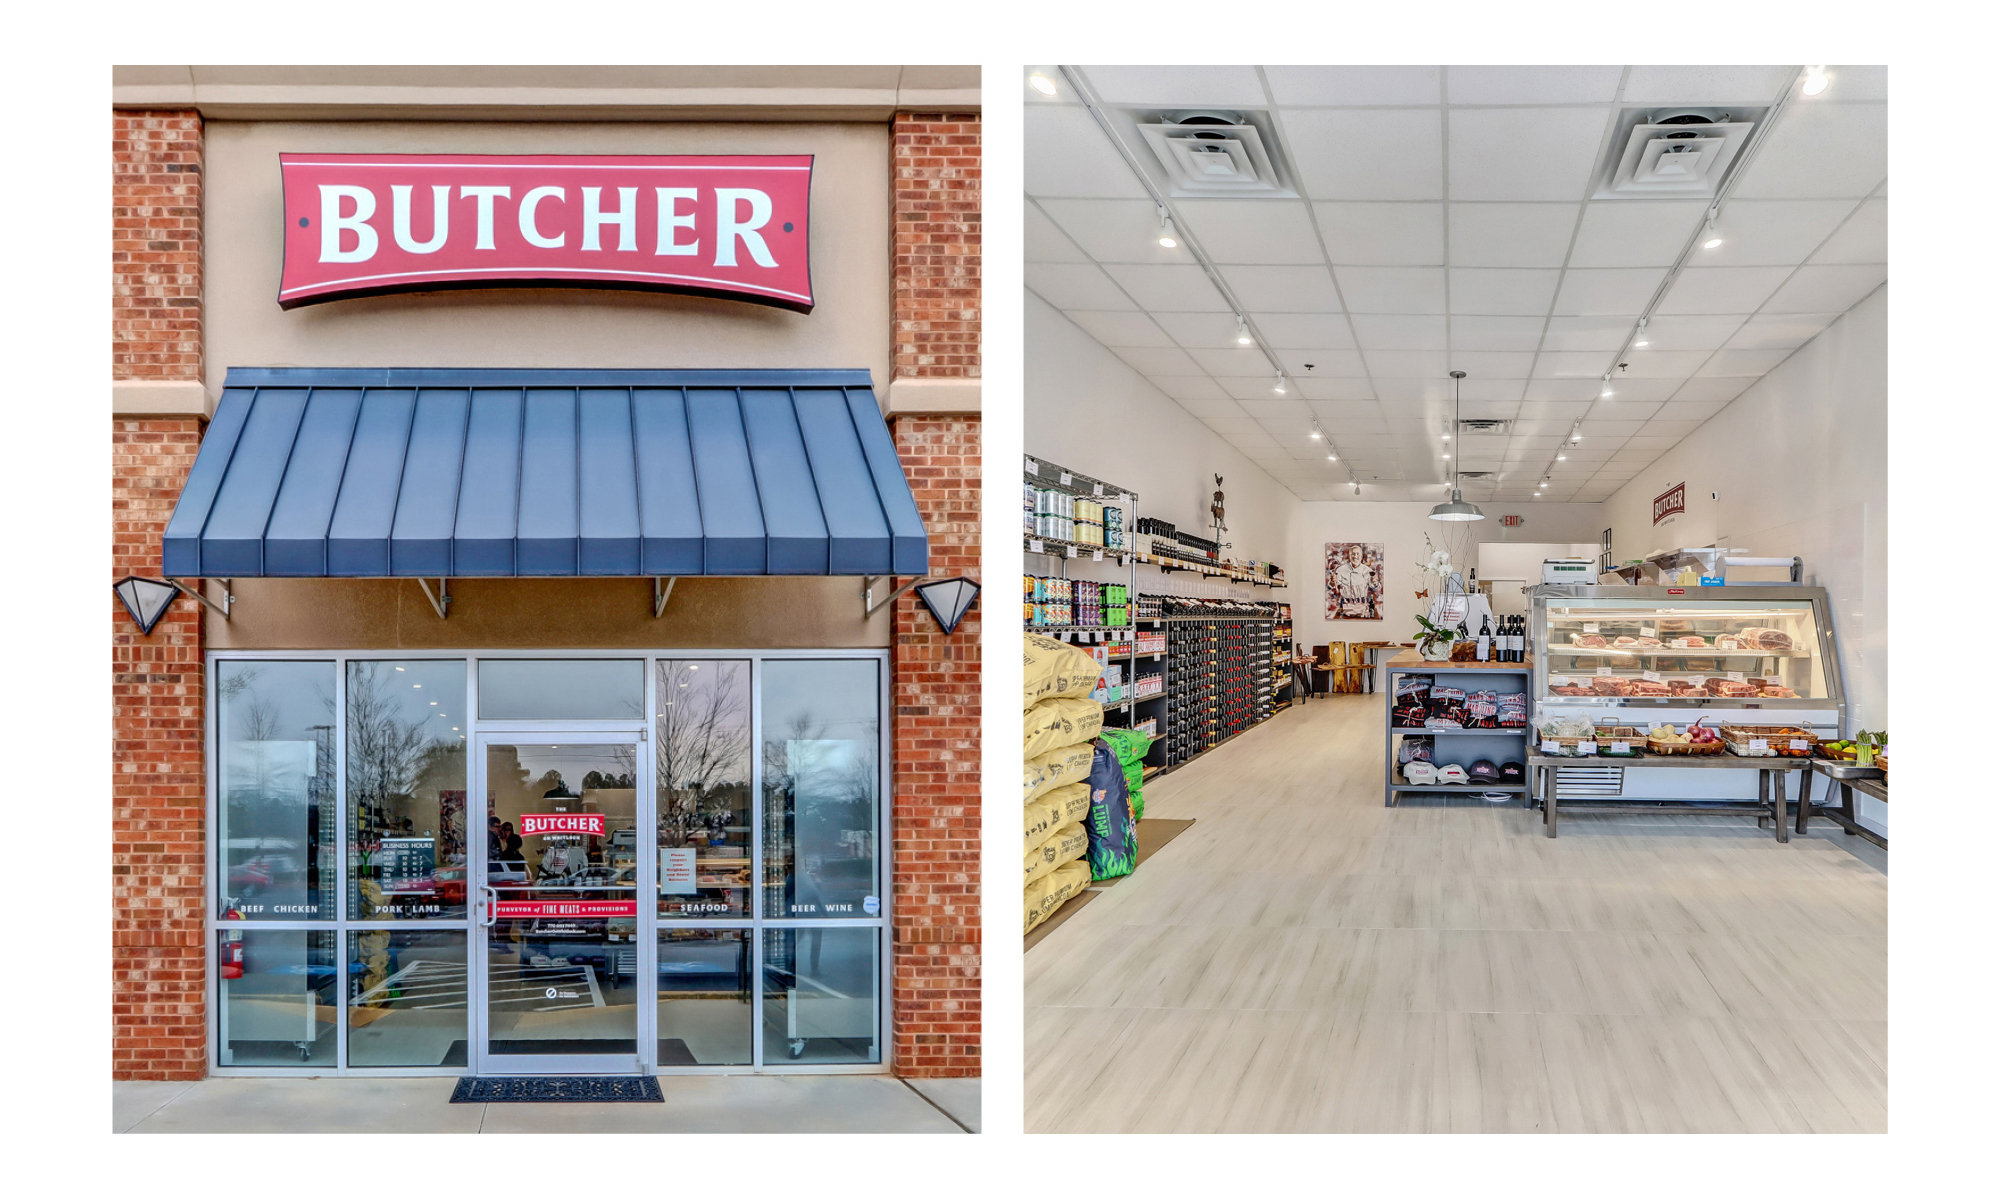 Grant Design Collaborative Creates Brand Experience for The Butcher on Whitlock